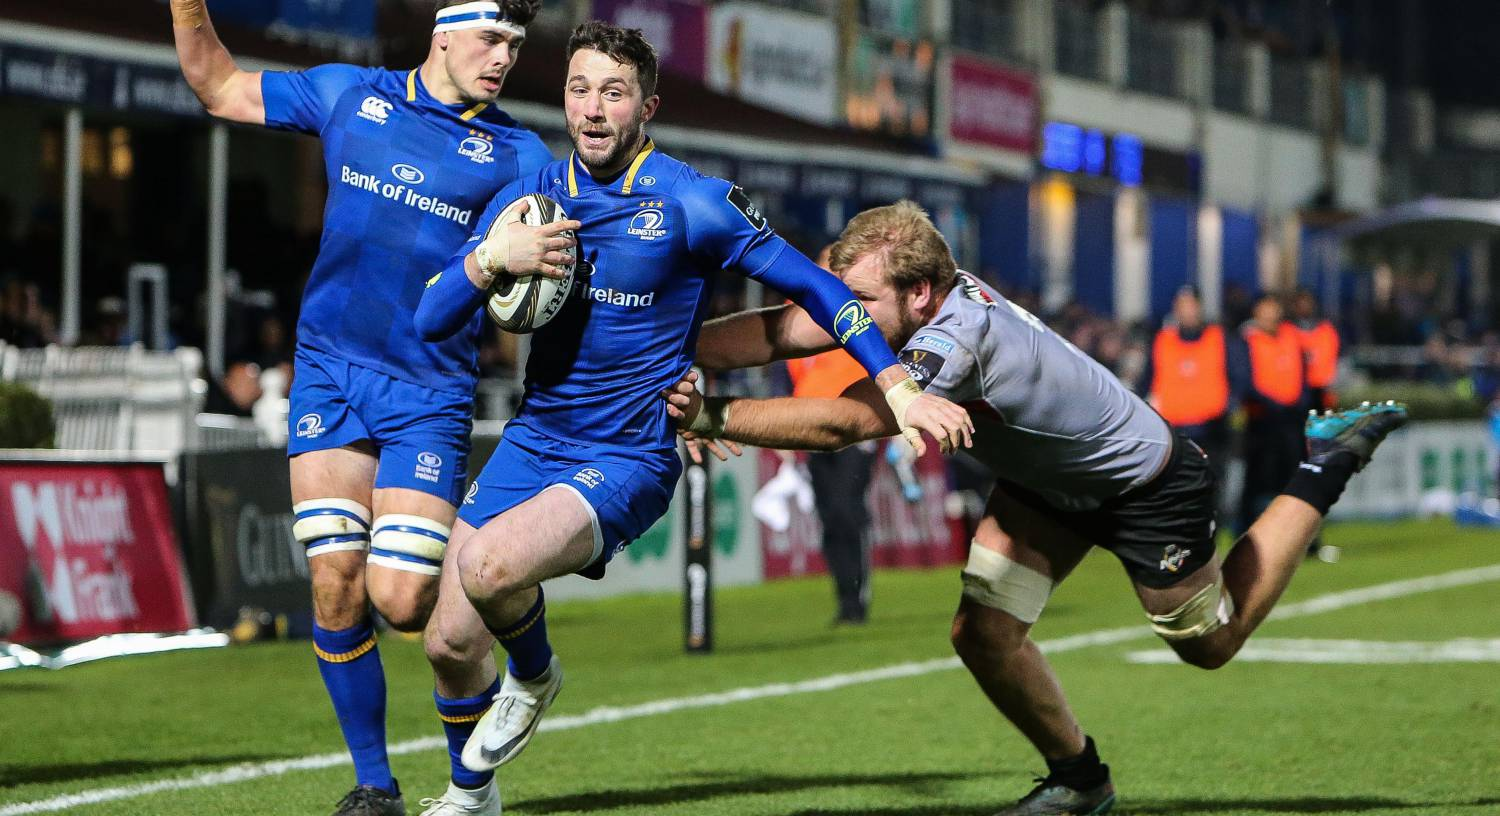 Leinster's Barry Daly scoring a try against Southern Kings in 2018. Picture: INPHO/Gary Carr